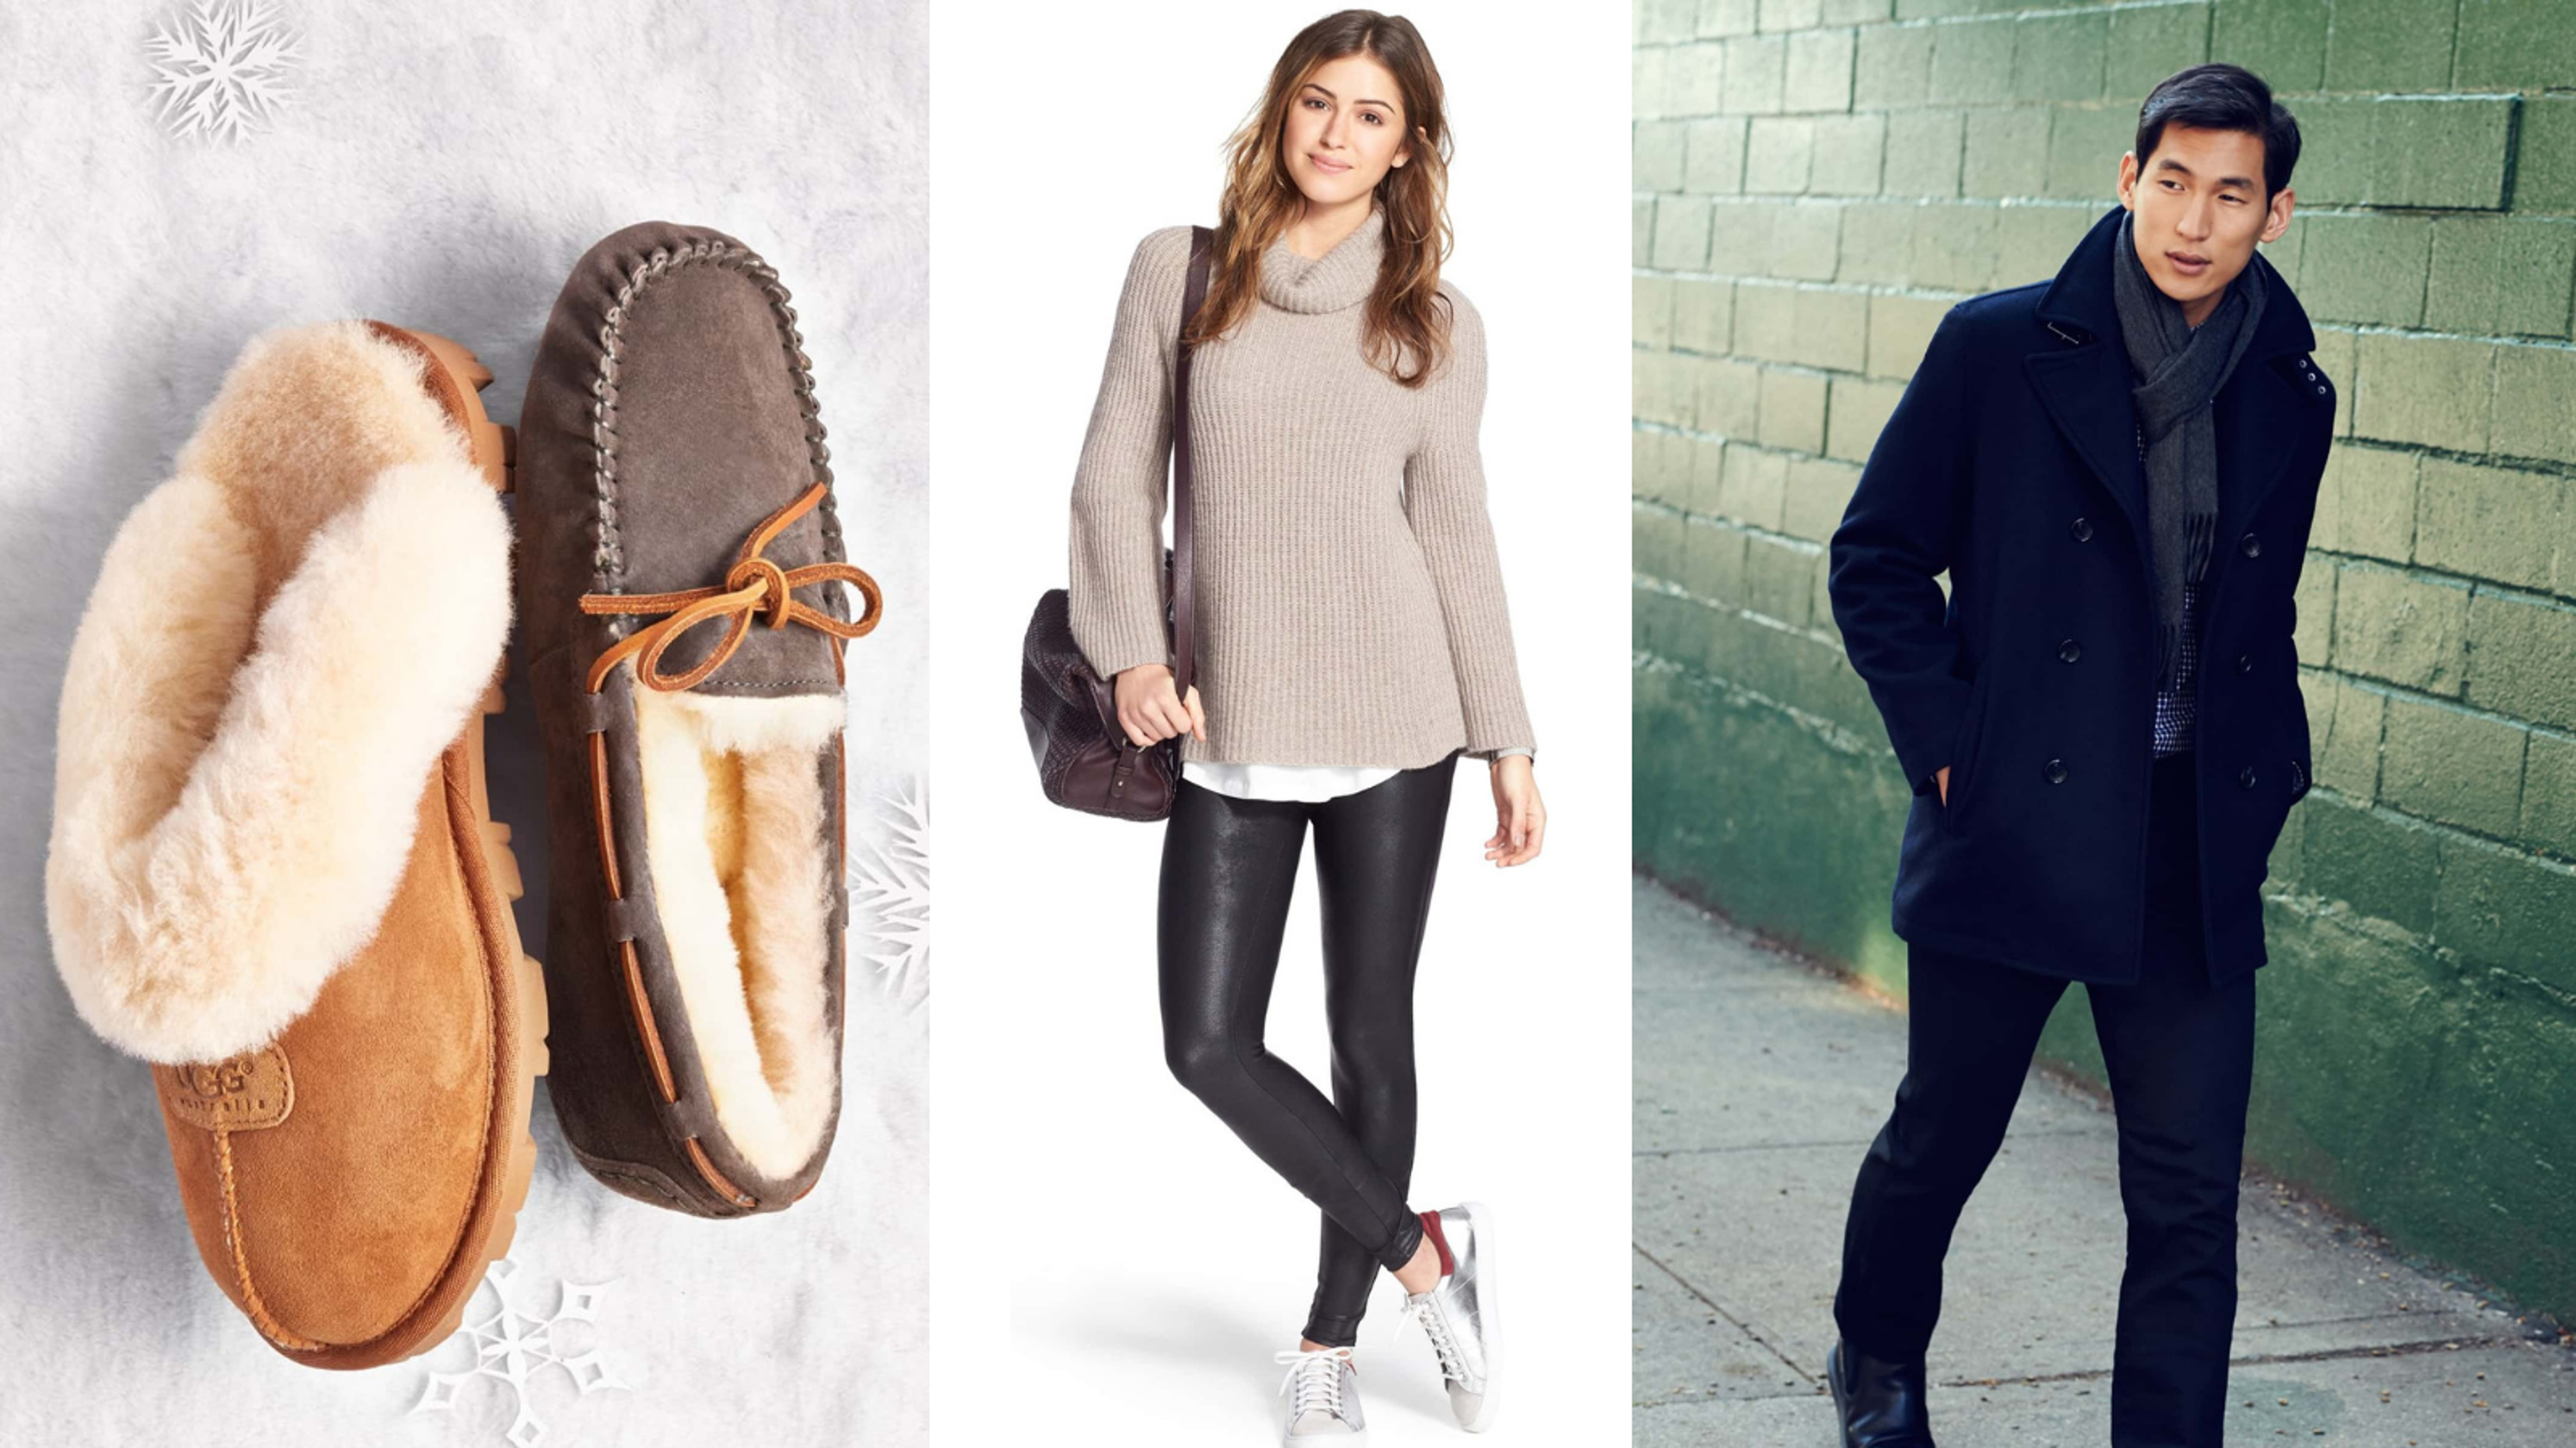 241684b6789 The 30 best things you can buy at Nordstrom: Clothing, Shoes, Coats ...